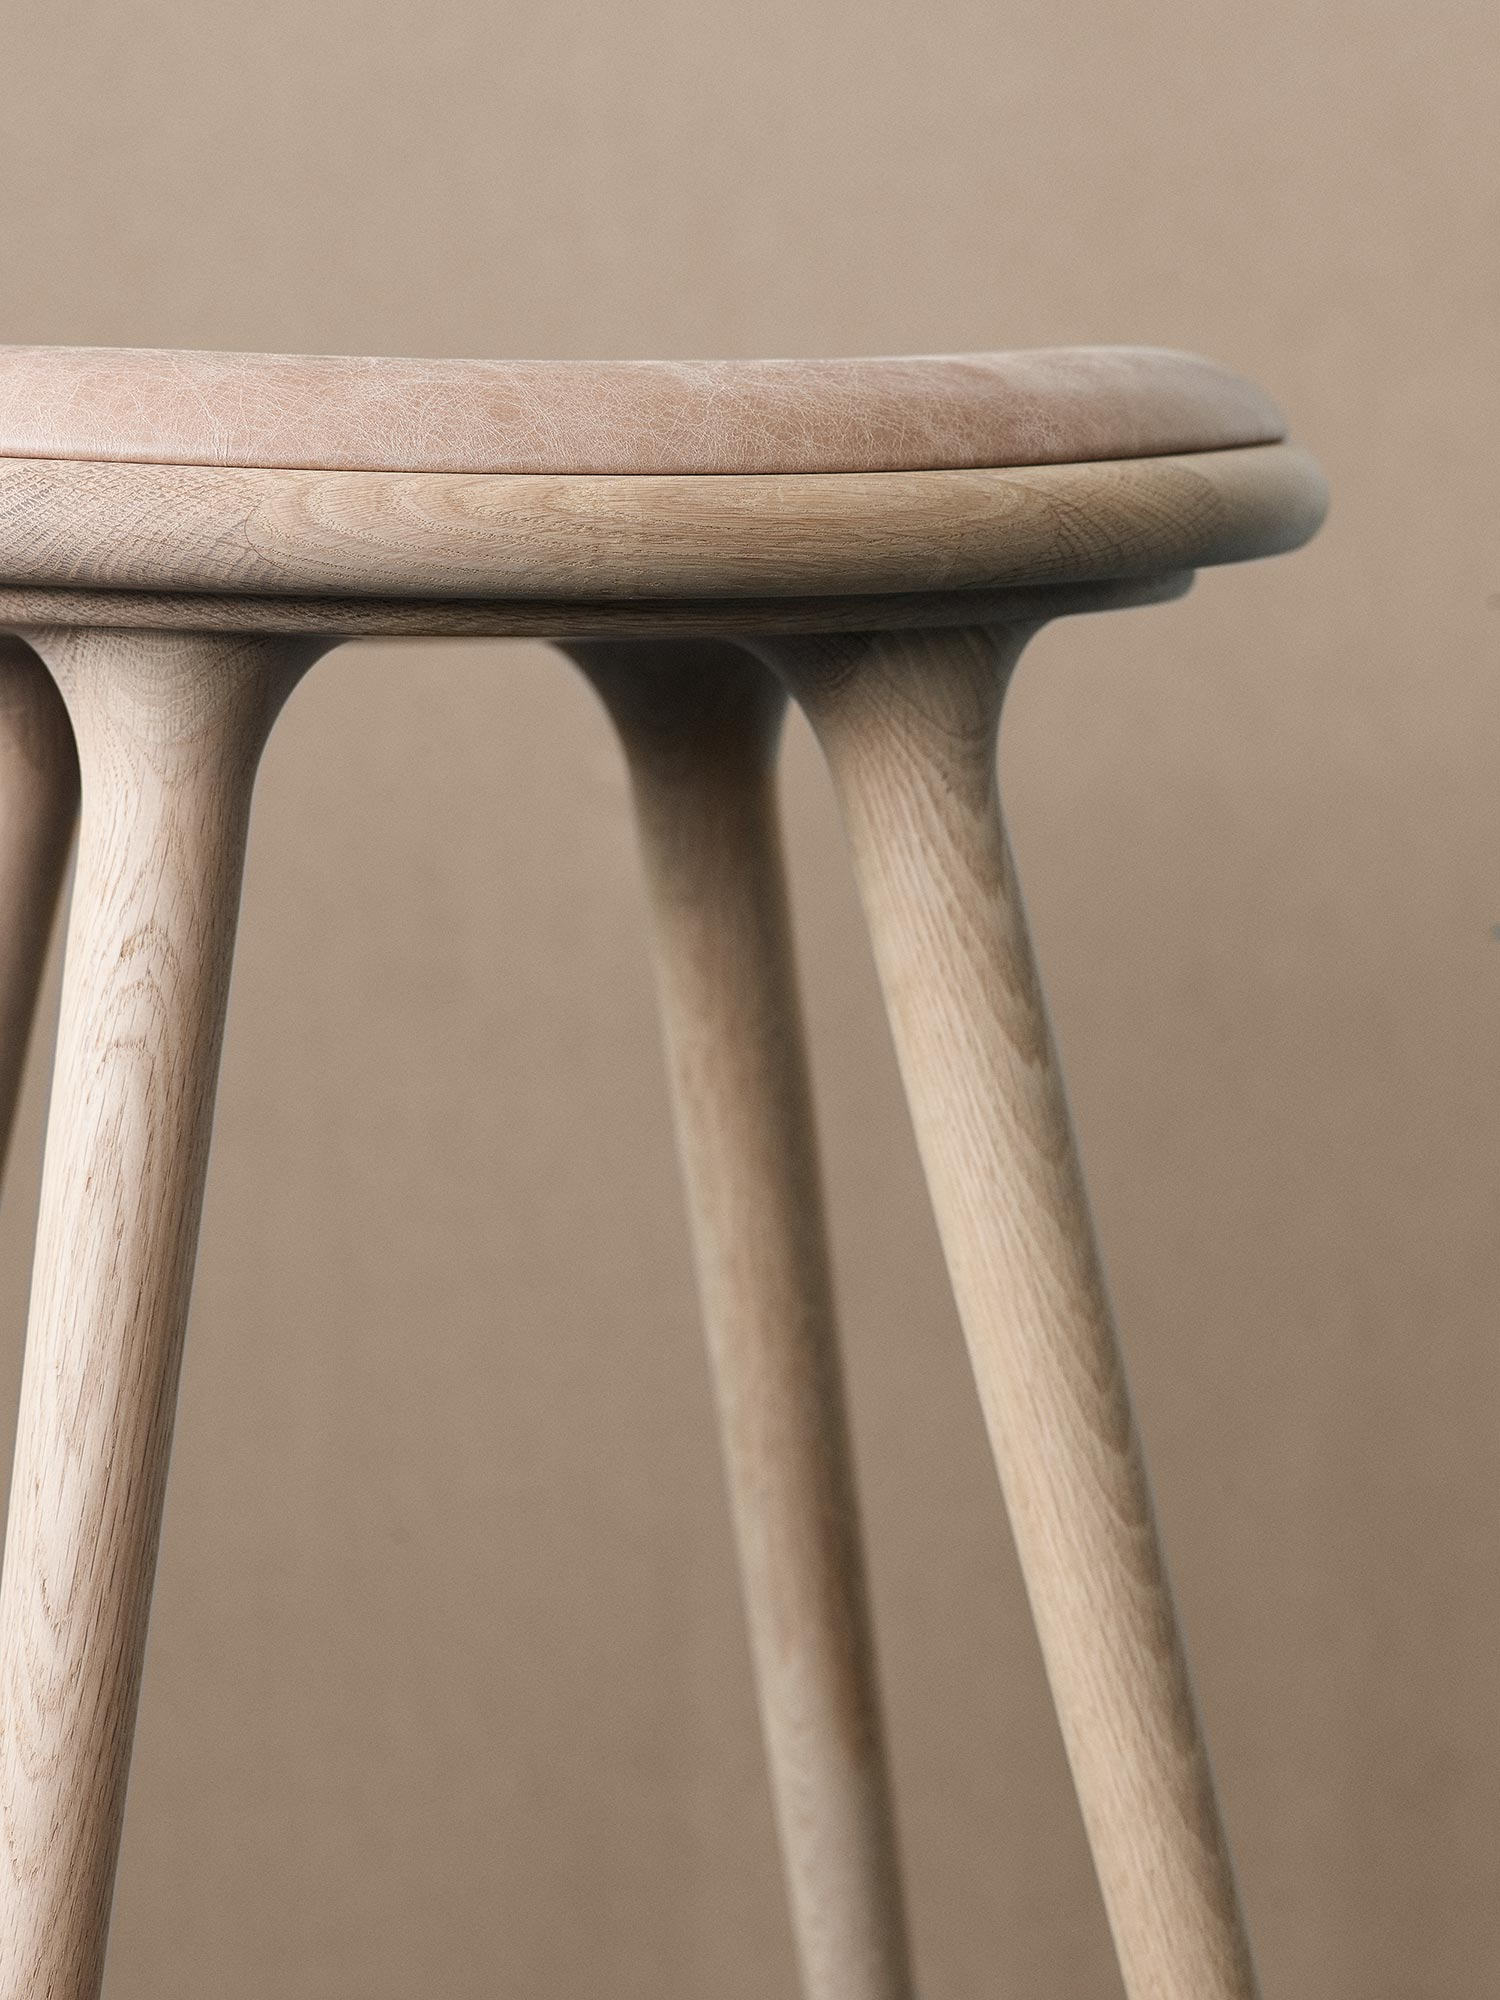 07_Mater_highstool_closeup.jpg